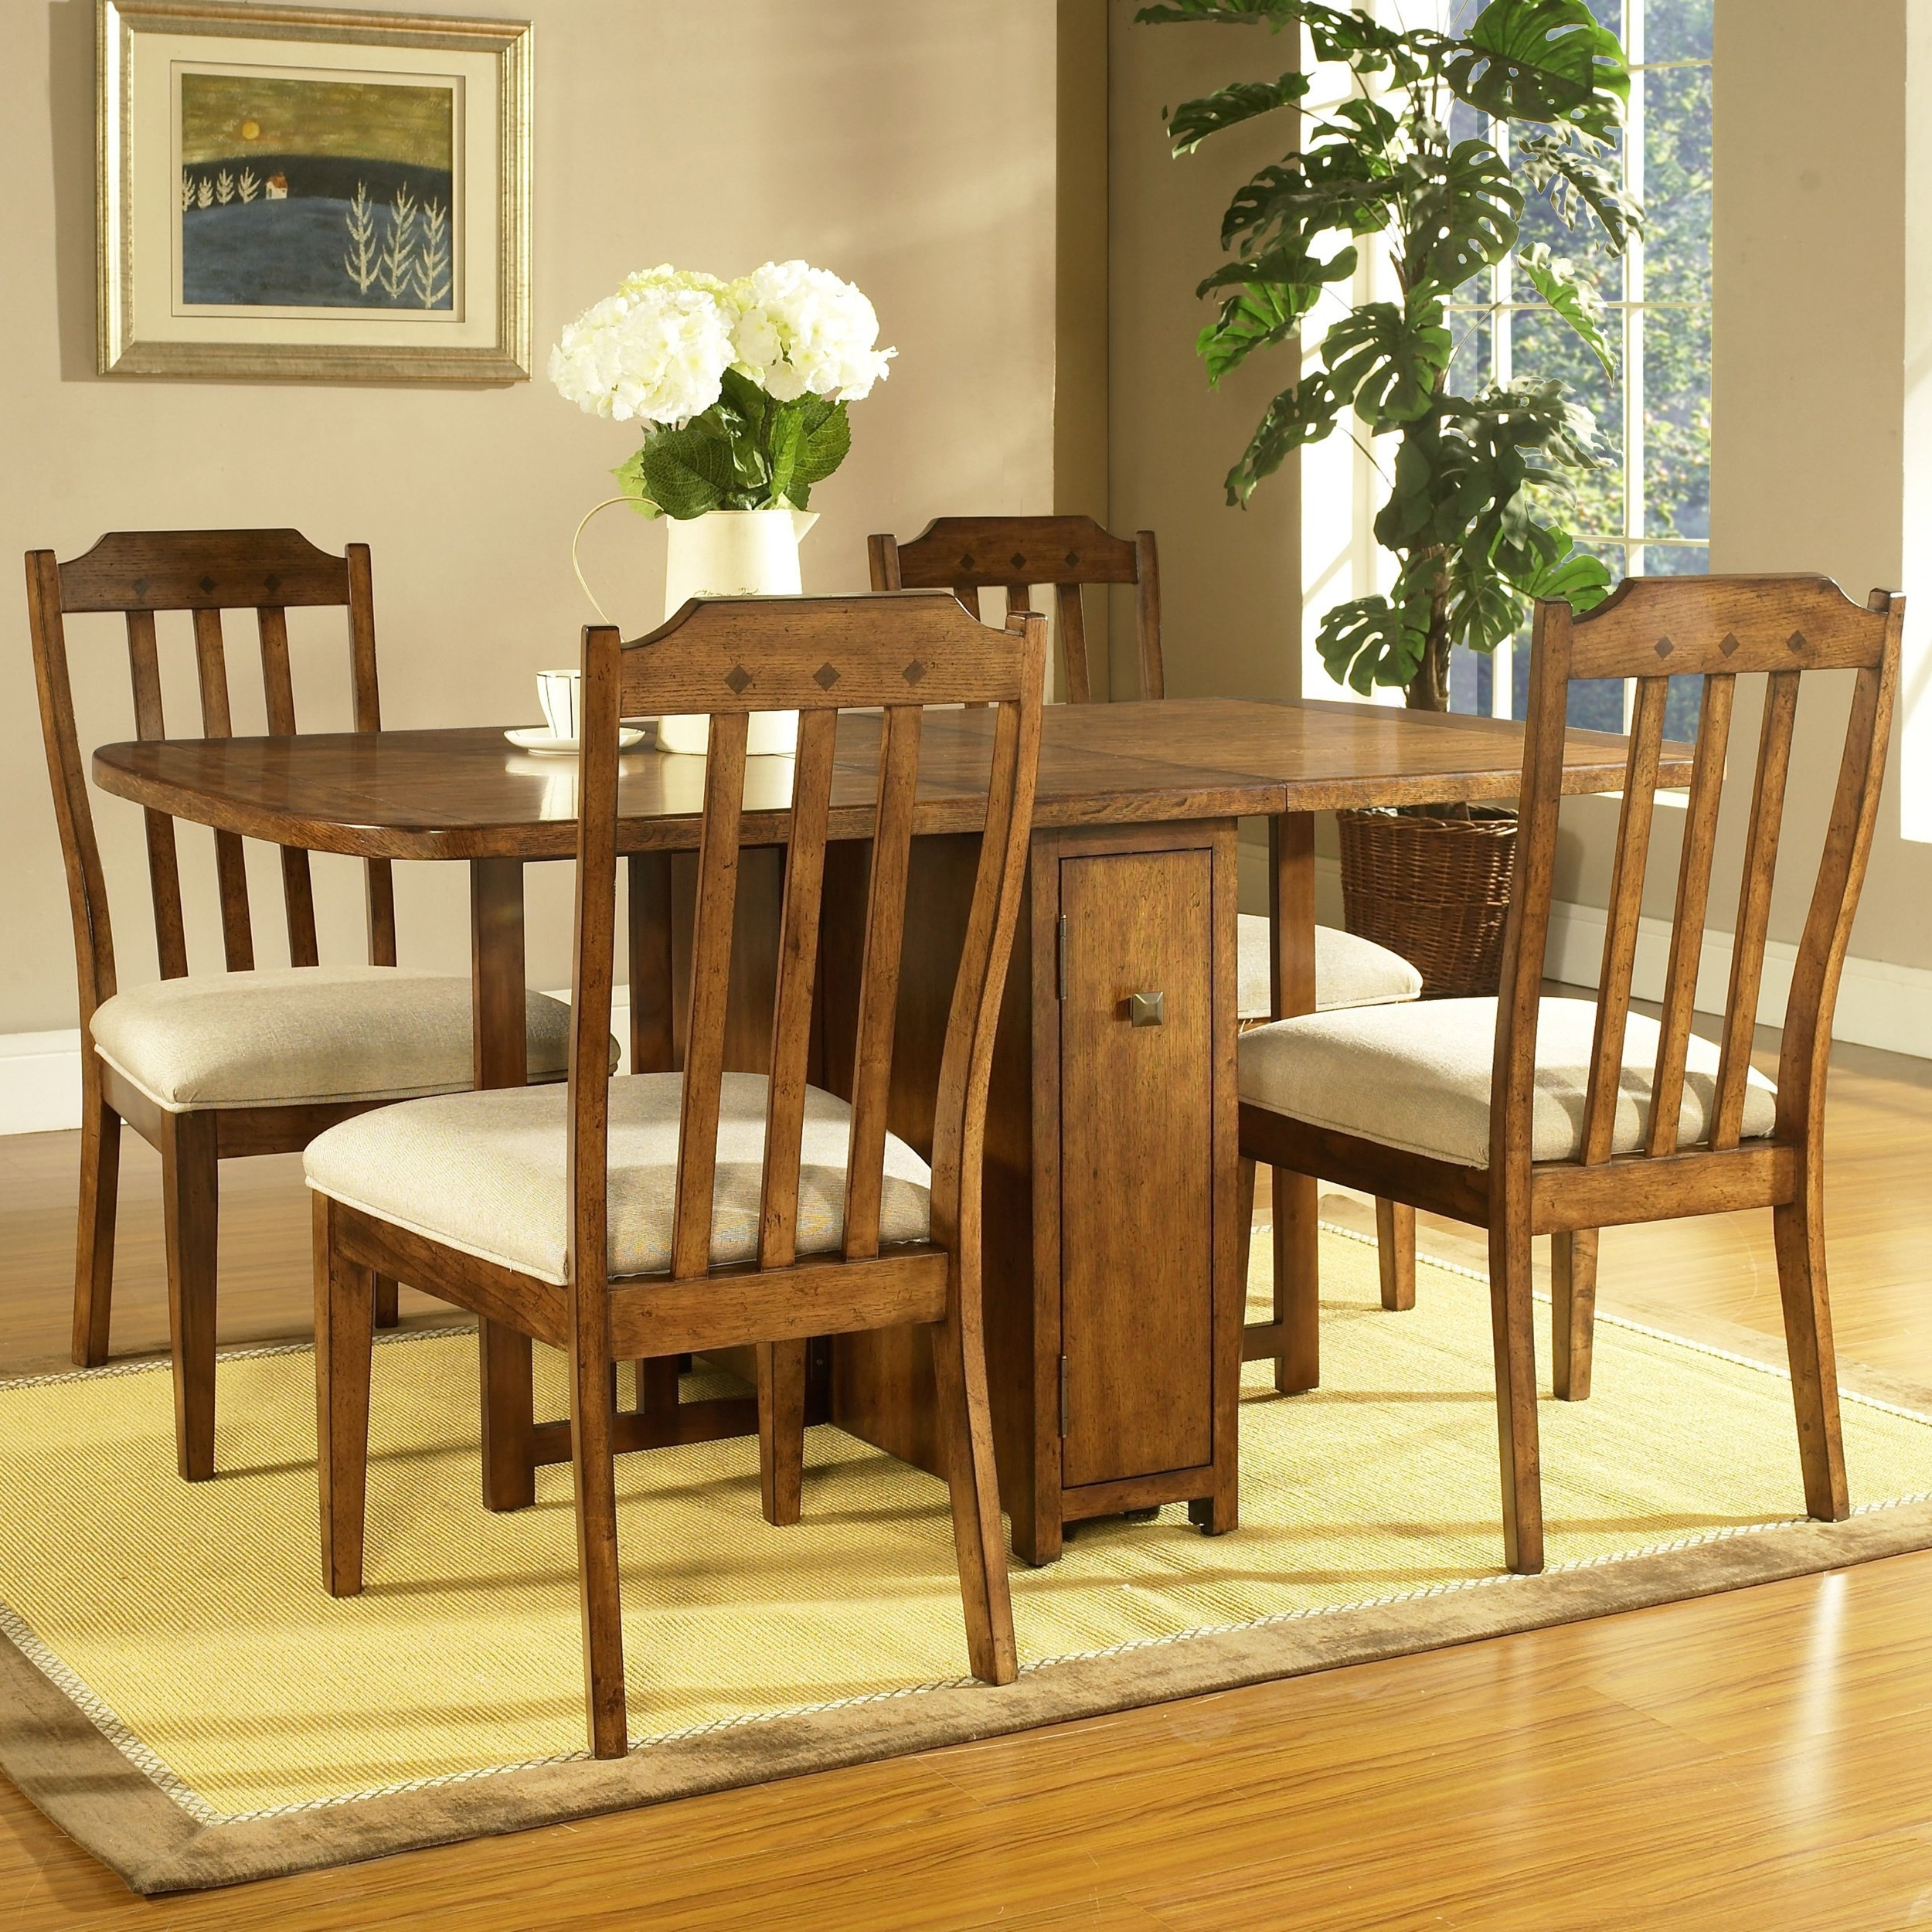 Craftsman 7 Piece Rectangular Extension Dining Sets With Arm & Uph Side Chairs Pertaining To Most Up To Date Shop Somerton Dwelling Craftsman 5 Piece Gate Leg Dining Set – Free (View 23 of 25)